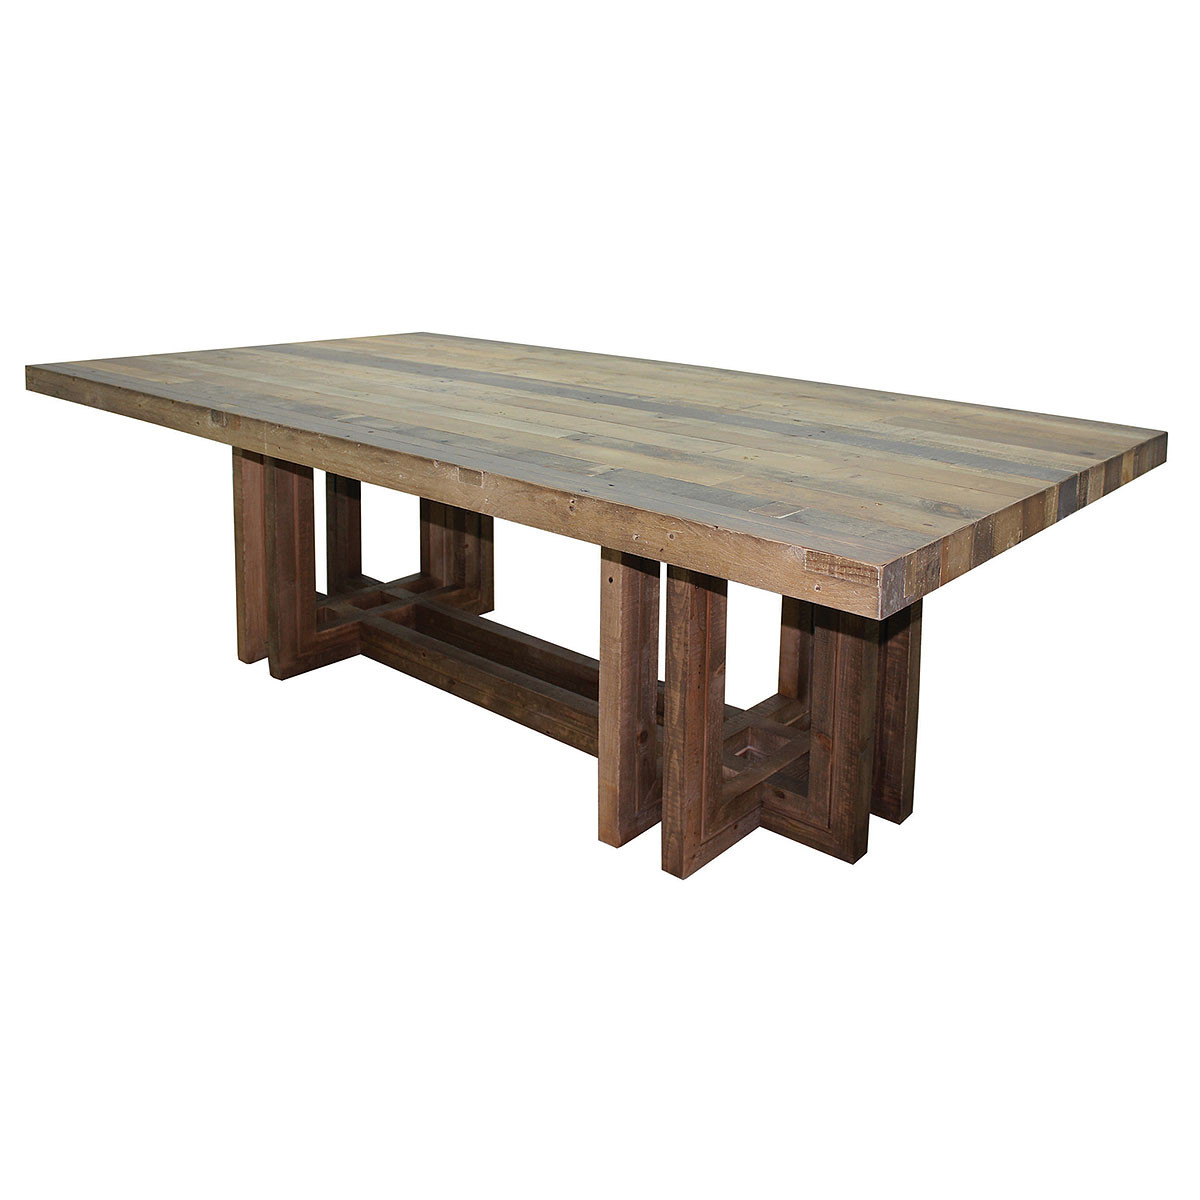 Angora dining table 95 modern reclaimed wood tables for Wood modern dining table